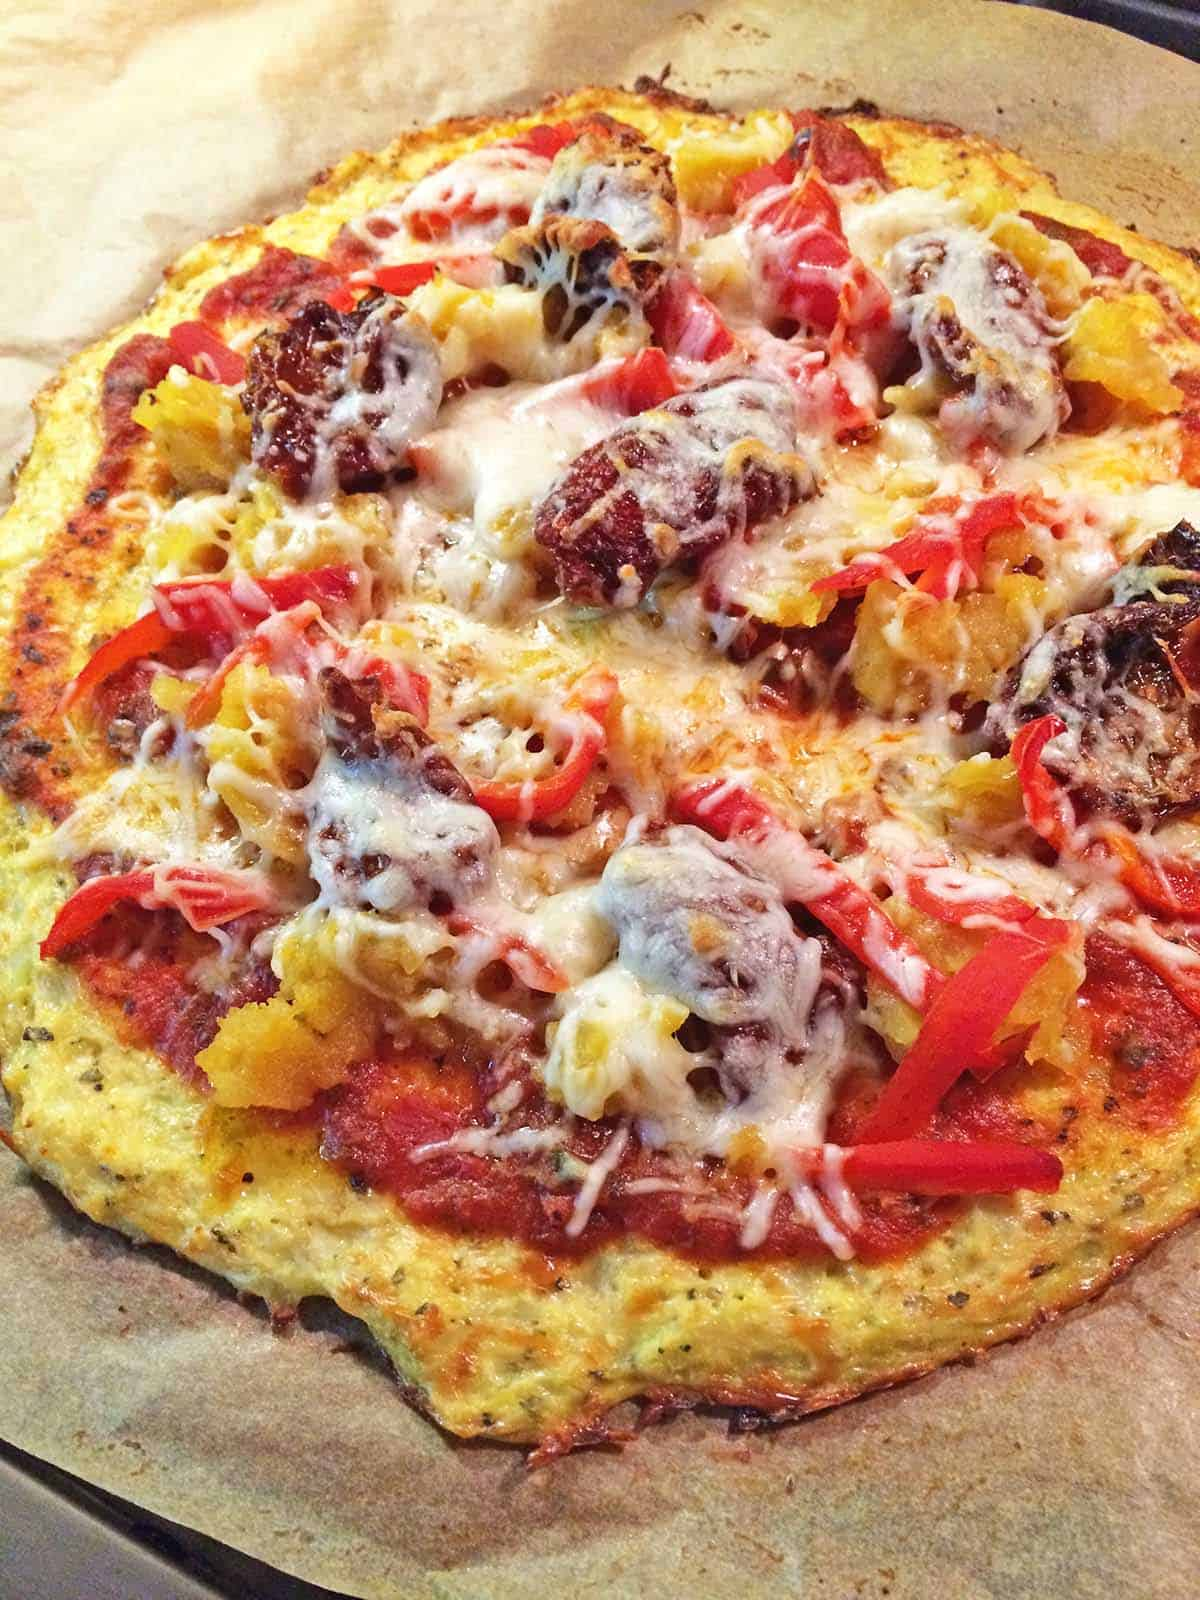 Cauliflower pizza crust with toppings